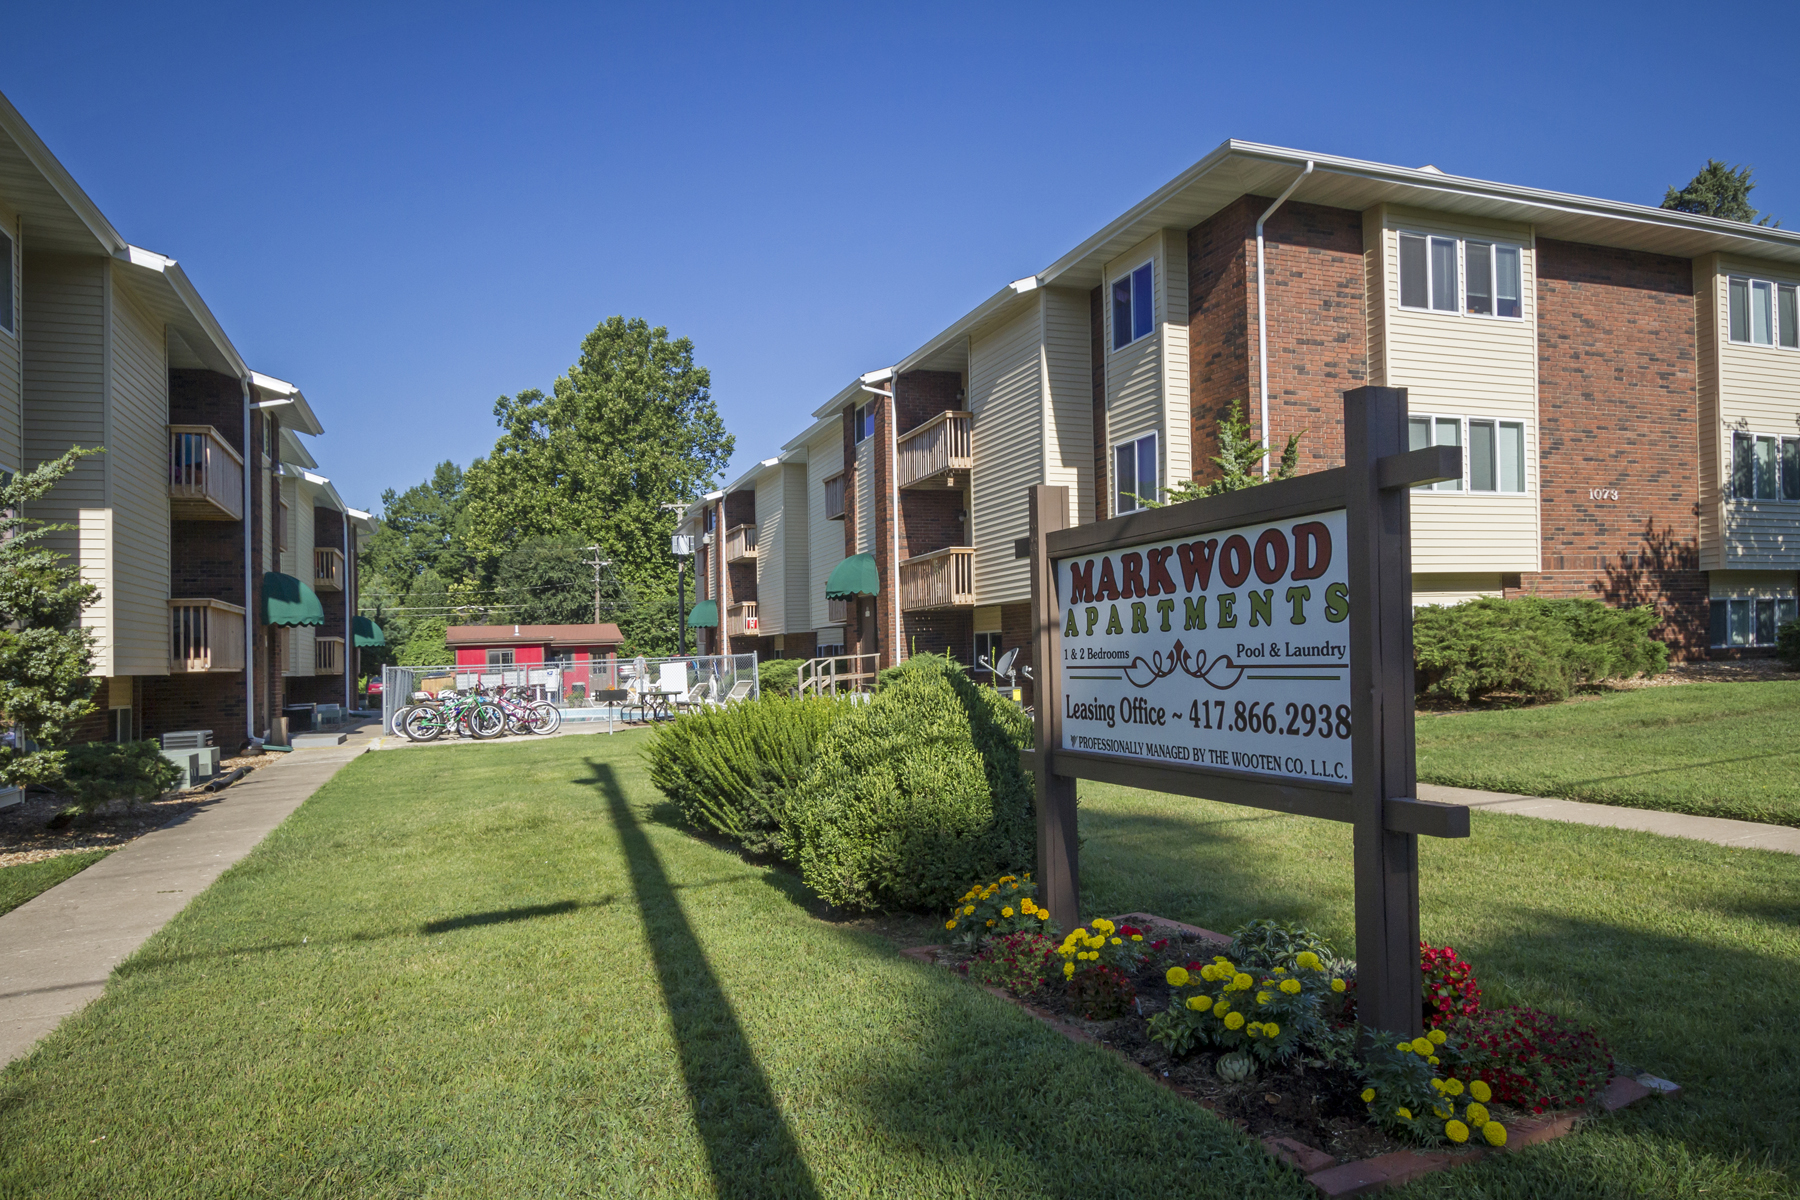 Markwood apartments the wooten company - One bedroom apartments springfield mo ...